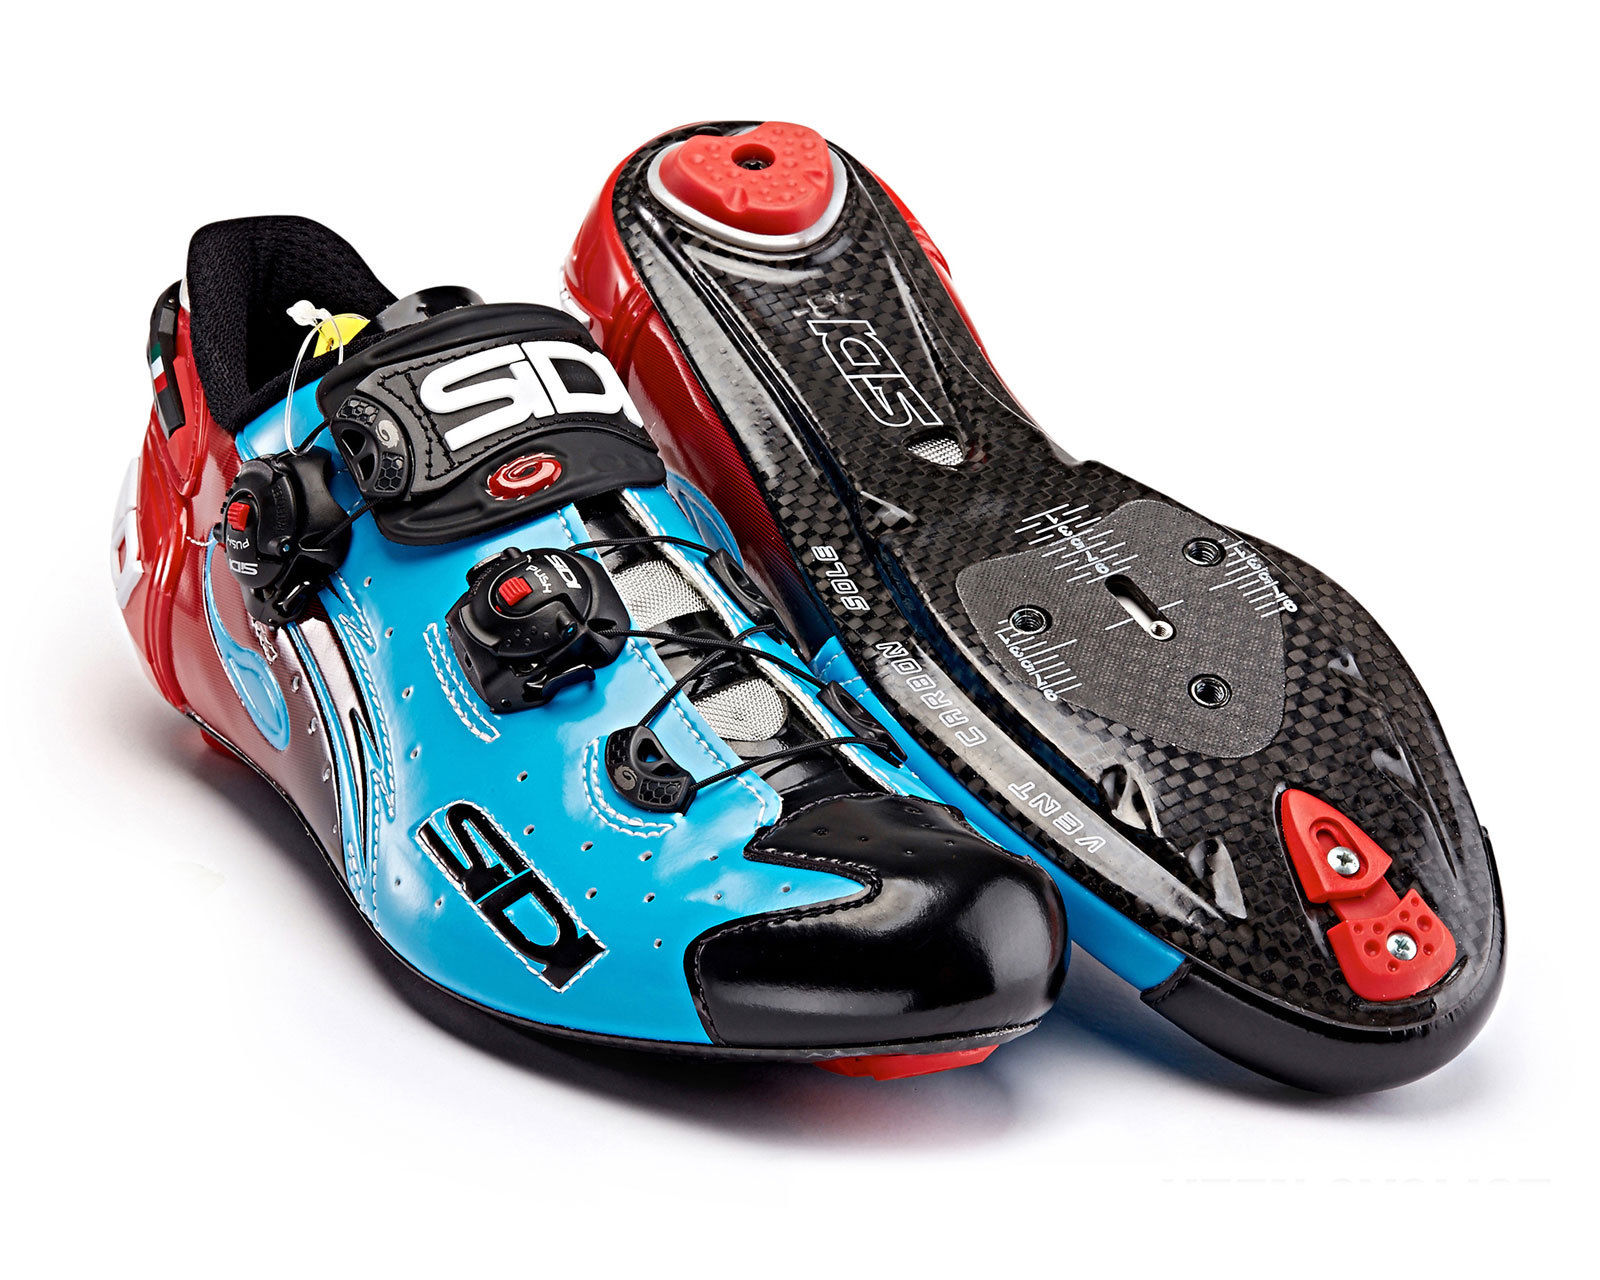 Stupendous Sidi Wire Vent Carbon Sky Blue Black Red Bike Closet Wiring Digital Resources Indicompassionincorg